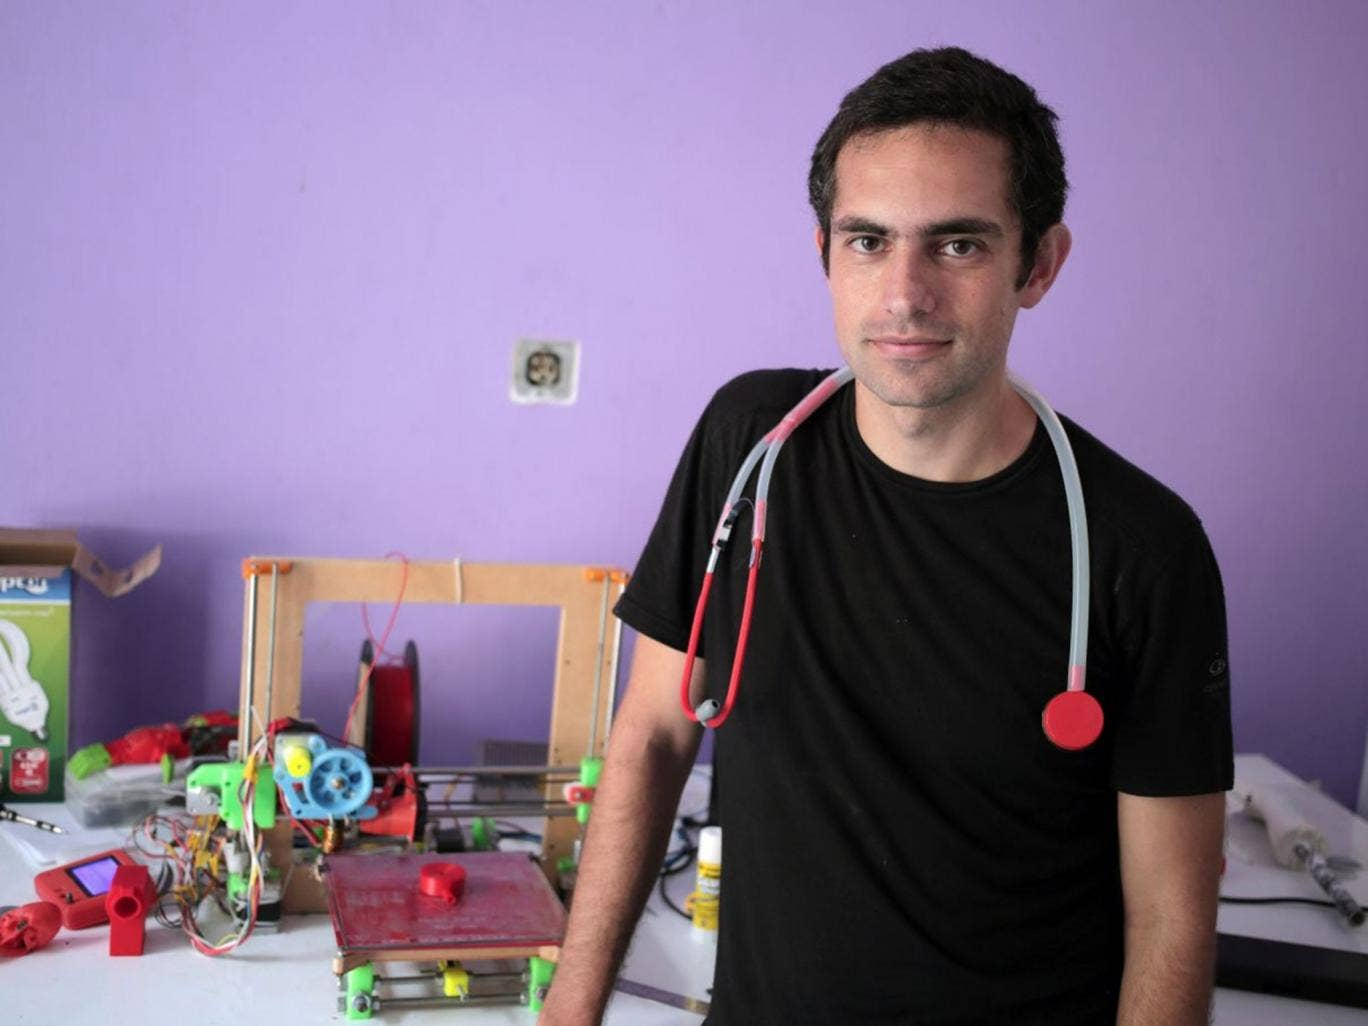 Gaza doctor Tarek Loubani creates 3D printed stethoscopes to alleviate medical supply shortages caused by blockade